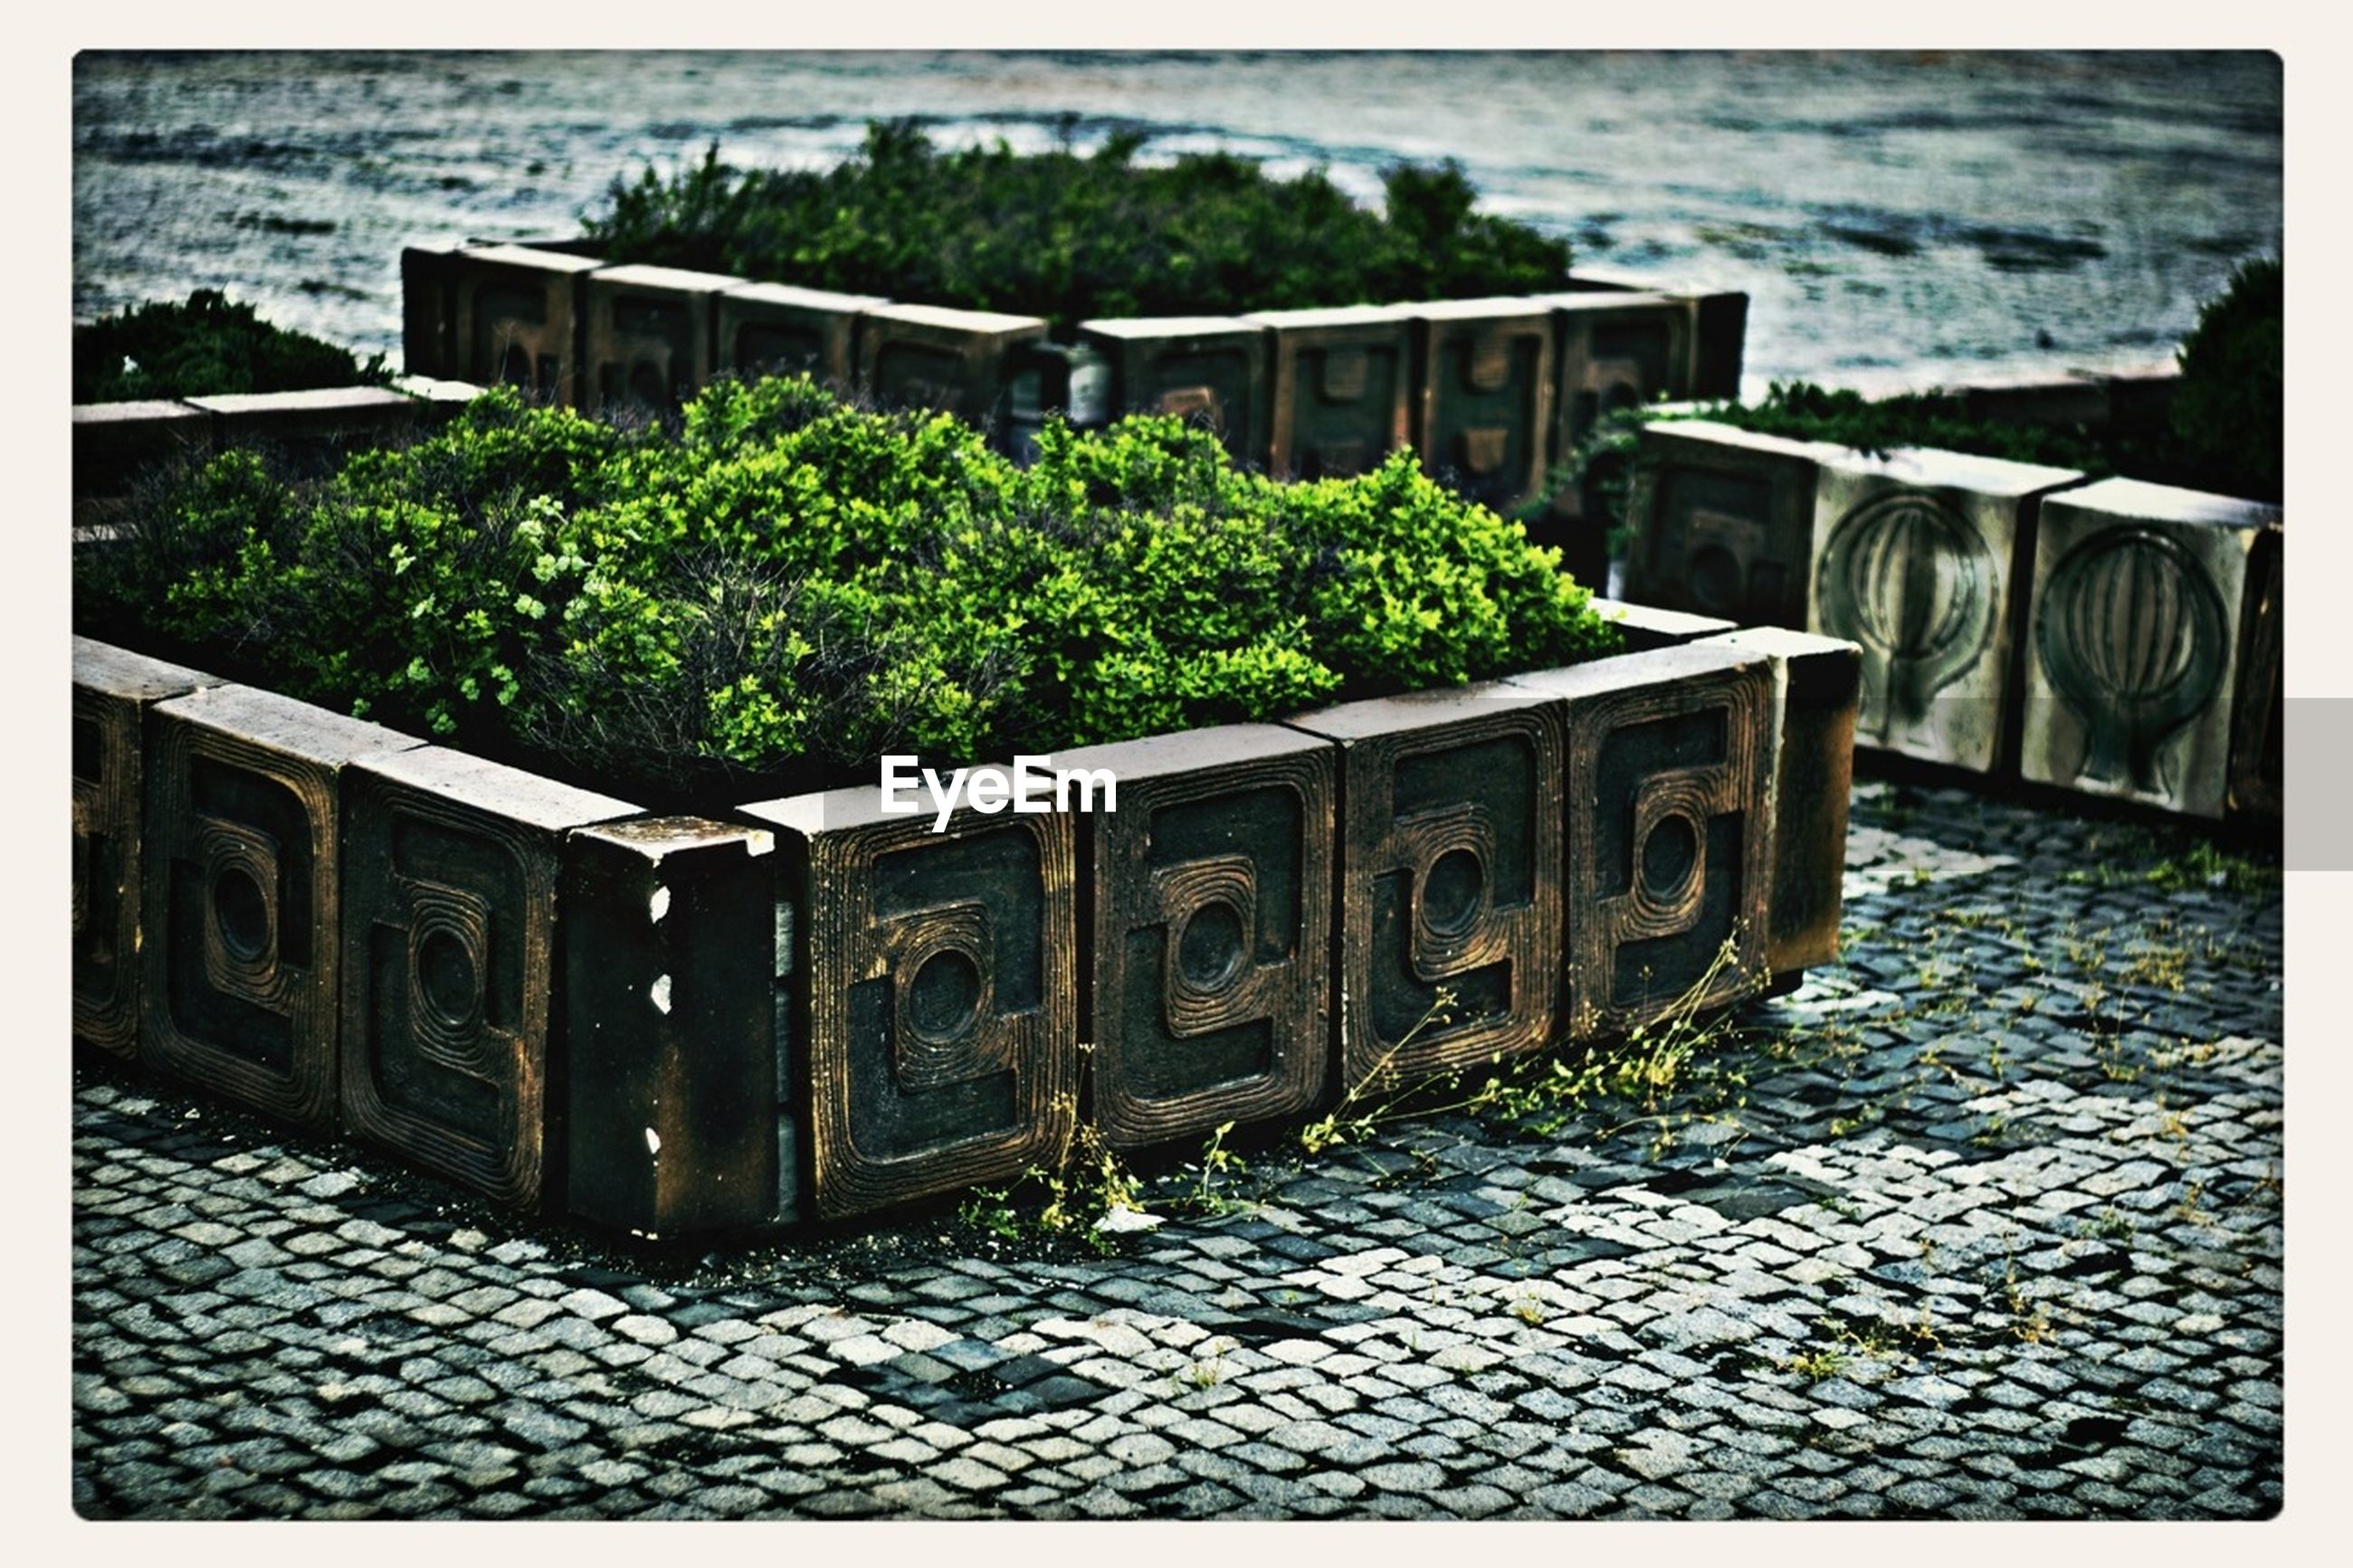 Plants growing decorative container on cobbled street